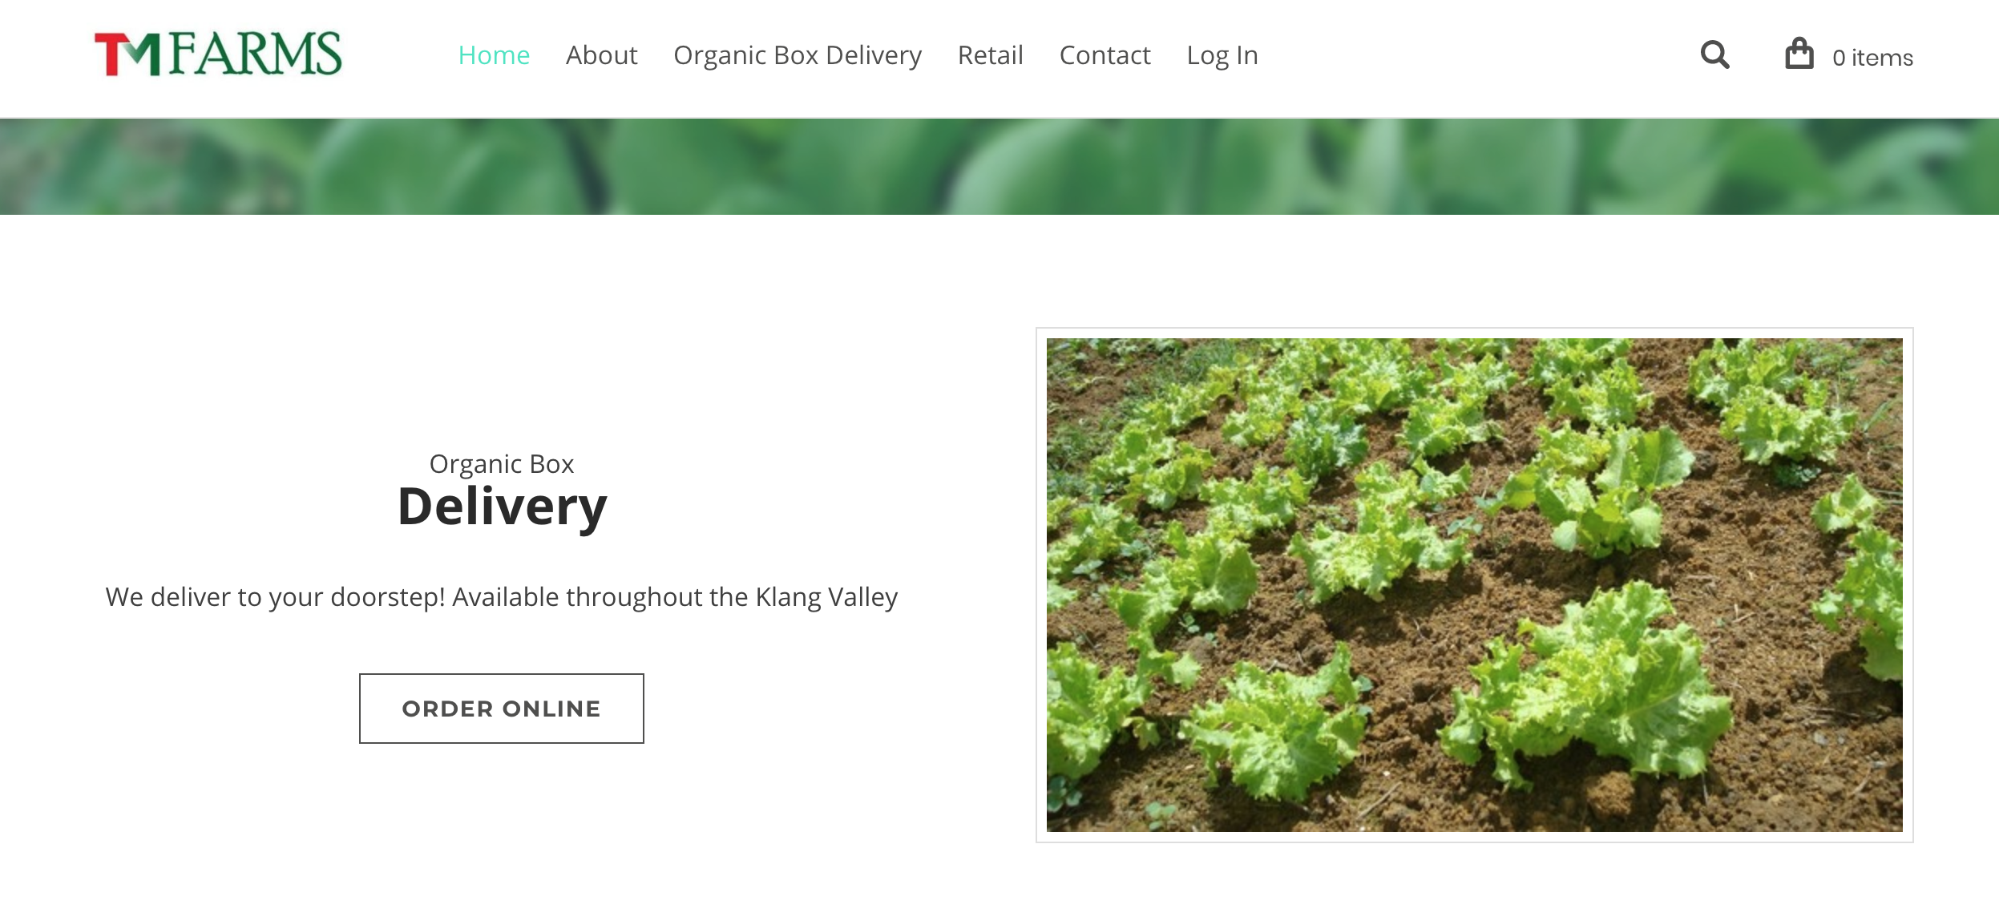 tm farms organic food delivery